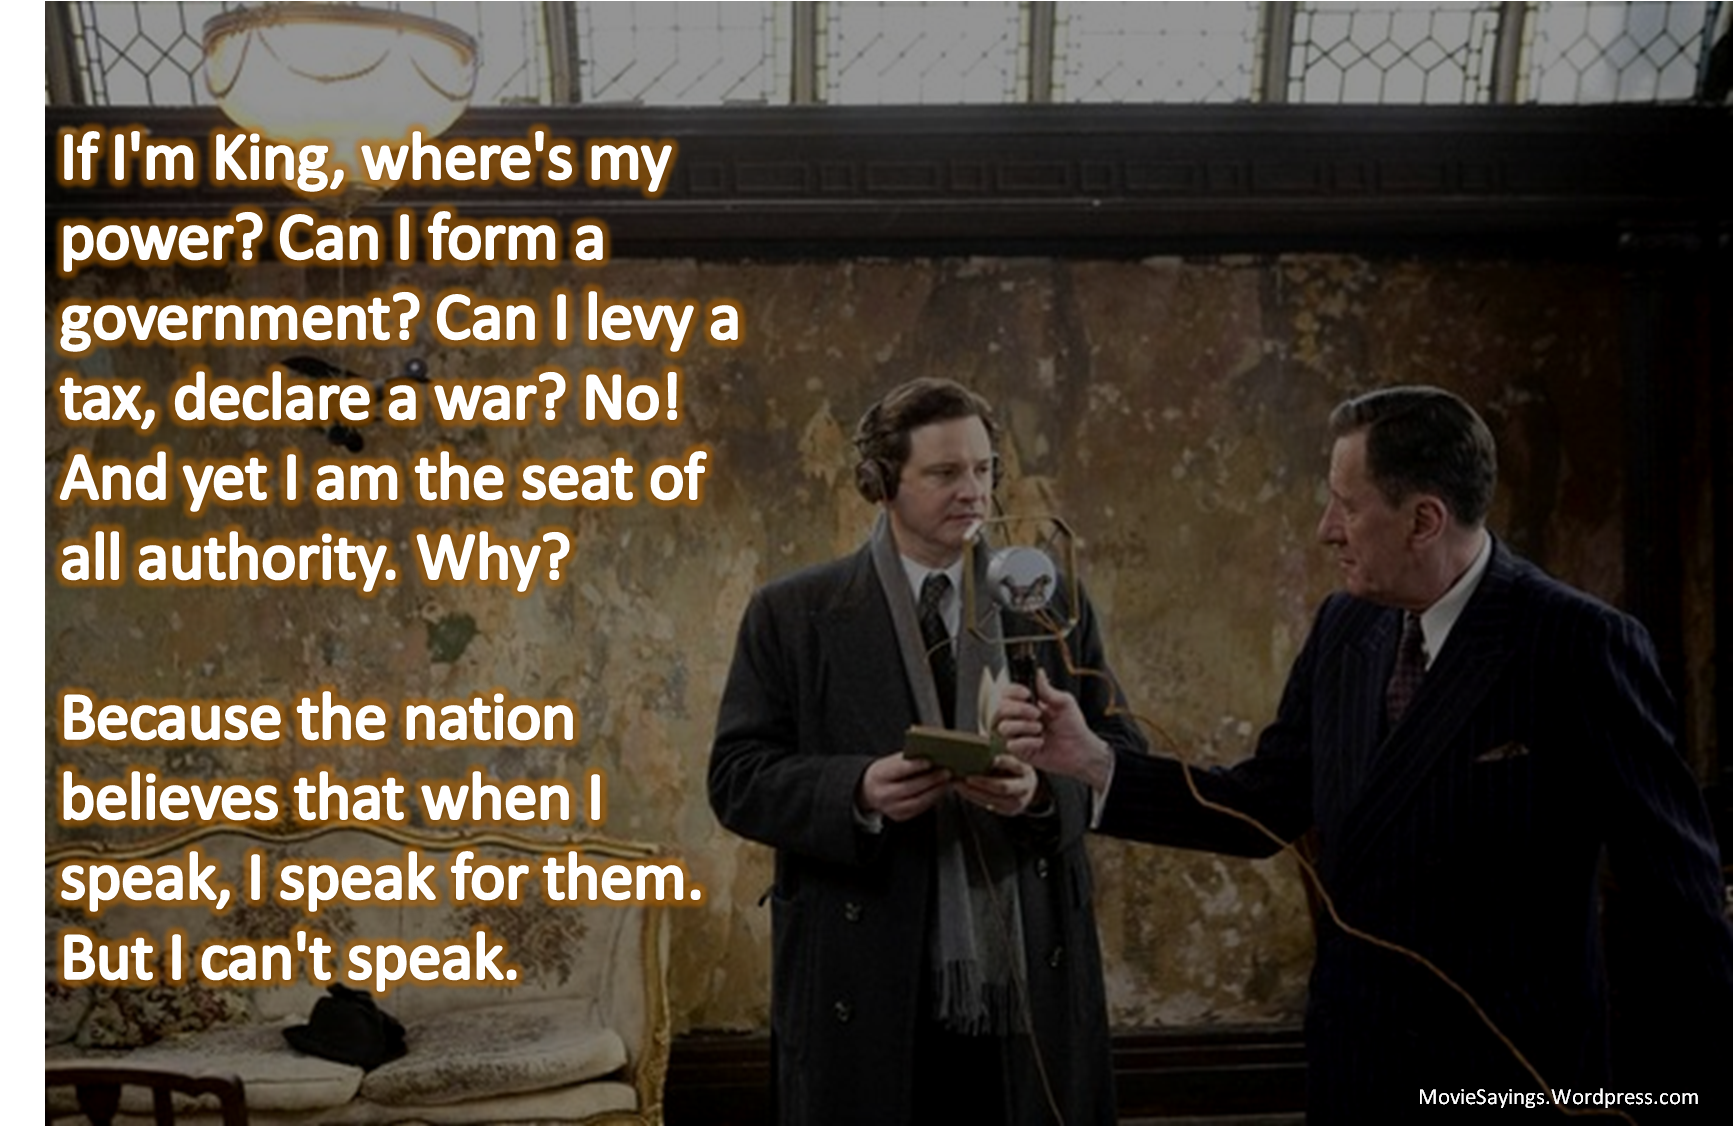 the kings speech analytical essay Get free homework help on william shakespeare's macbeth: play summary, scene summary and analysis and original text, quotes, essays, character analysis, and filmography courtesy of cliffsnotes in macbeth , william shakespeare's tragedy about power, ambition, deceit, and murder, the three witches foretell macbeth's rise to king of scotland but also prophesy that future kings.